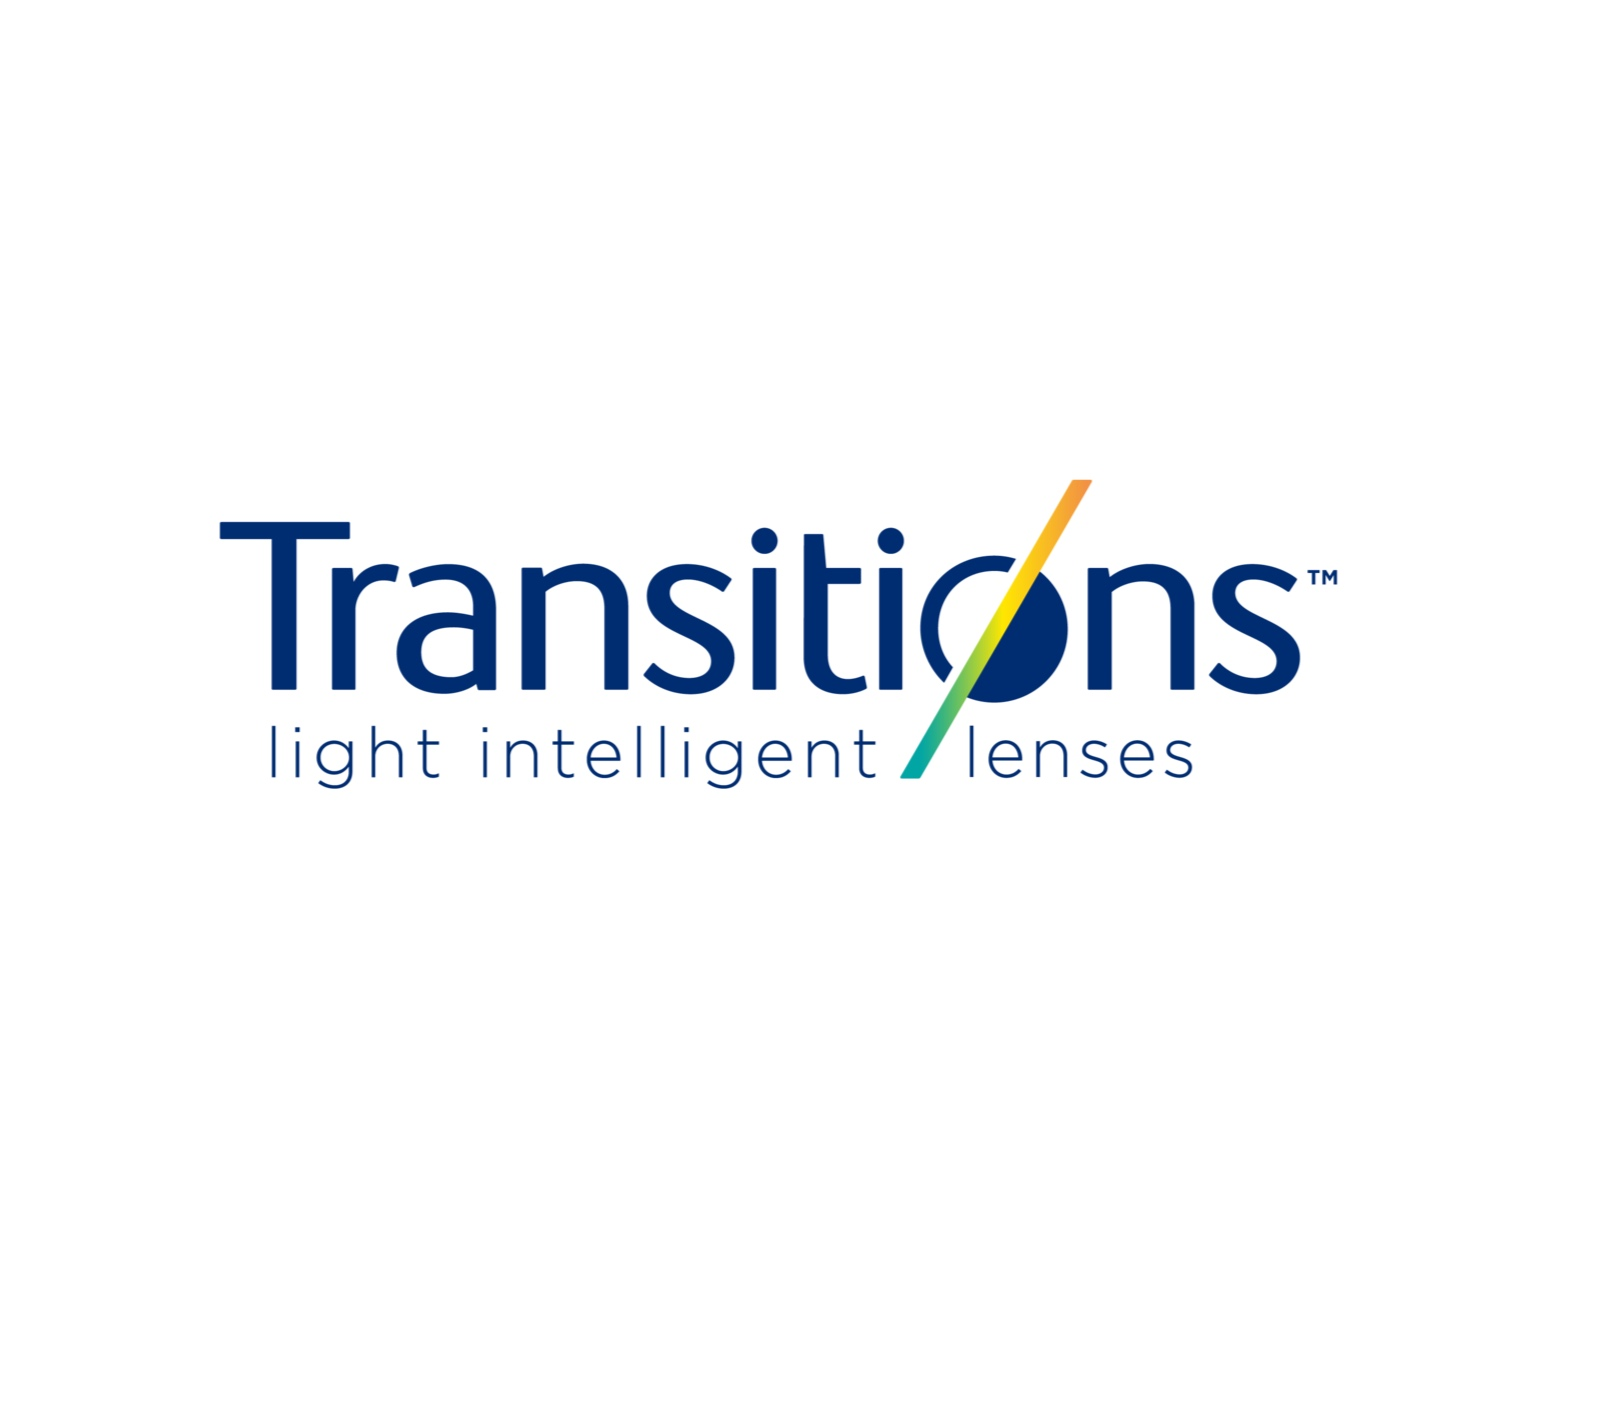 Transitions - TRANSITIONS® LIGHT INTELLIGENT LENSES™Transitions® light intelligent lenses™ automatically adapt to changing light conditions. Responding to the light around you they intelligently change from clear to dark when you go outdoors and back to clear when you return inside.